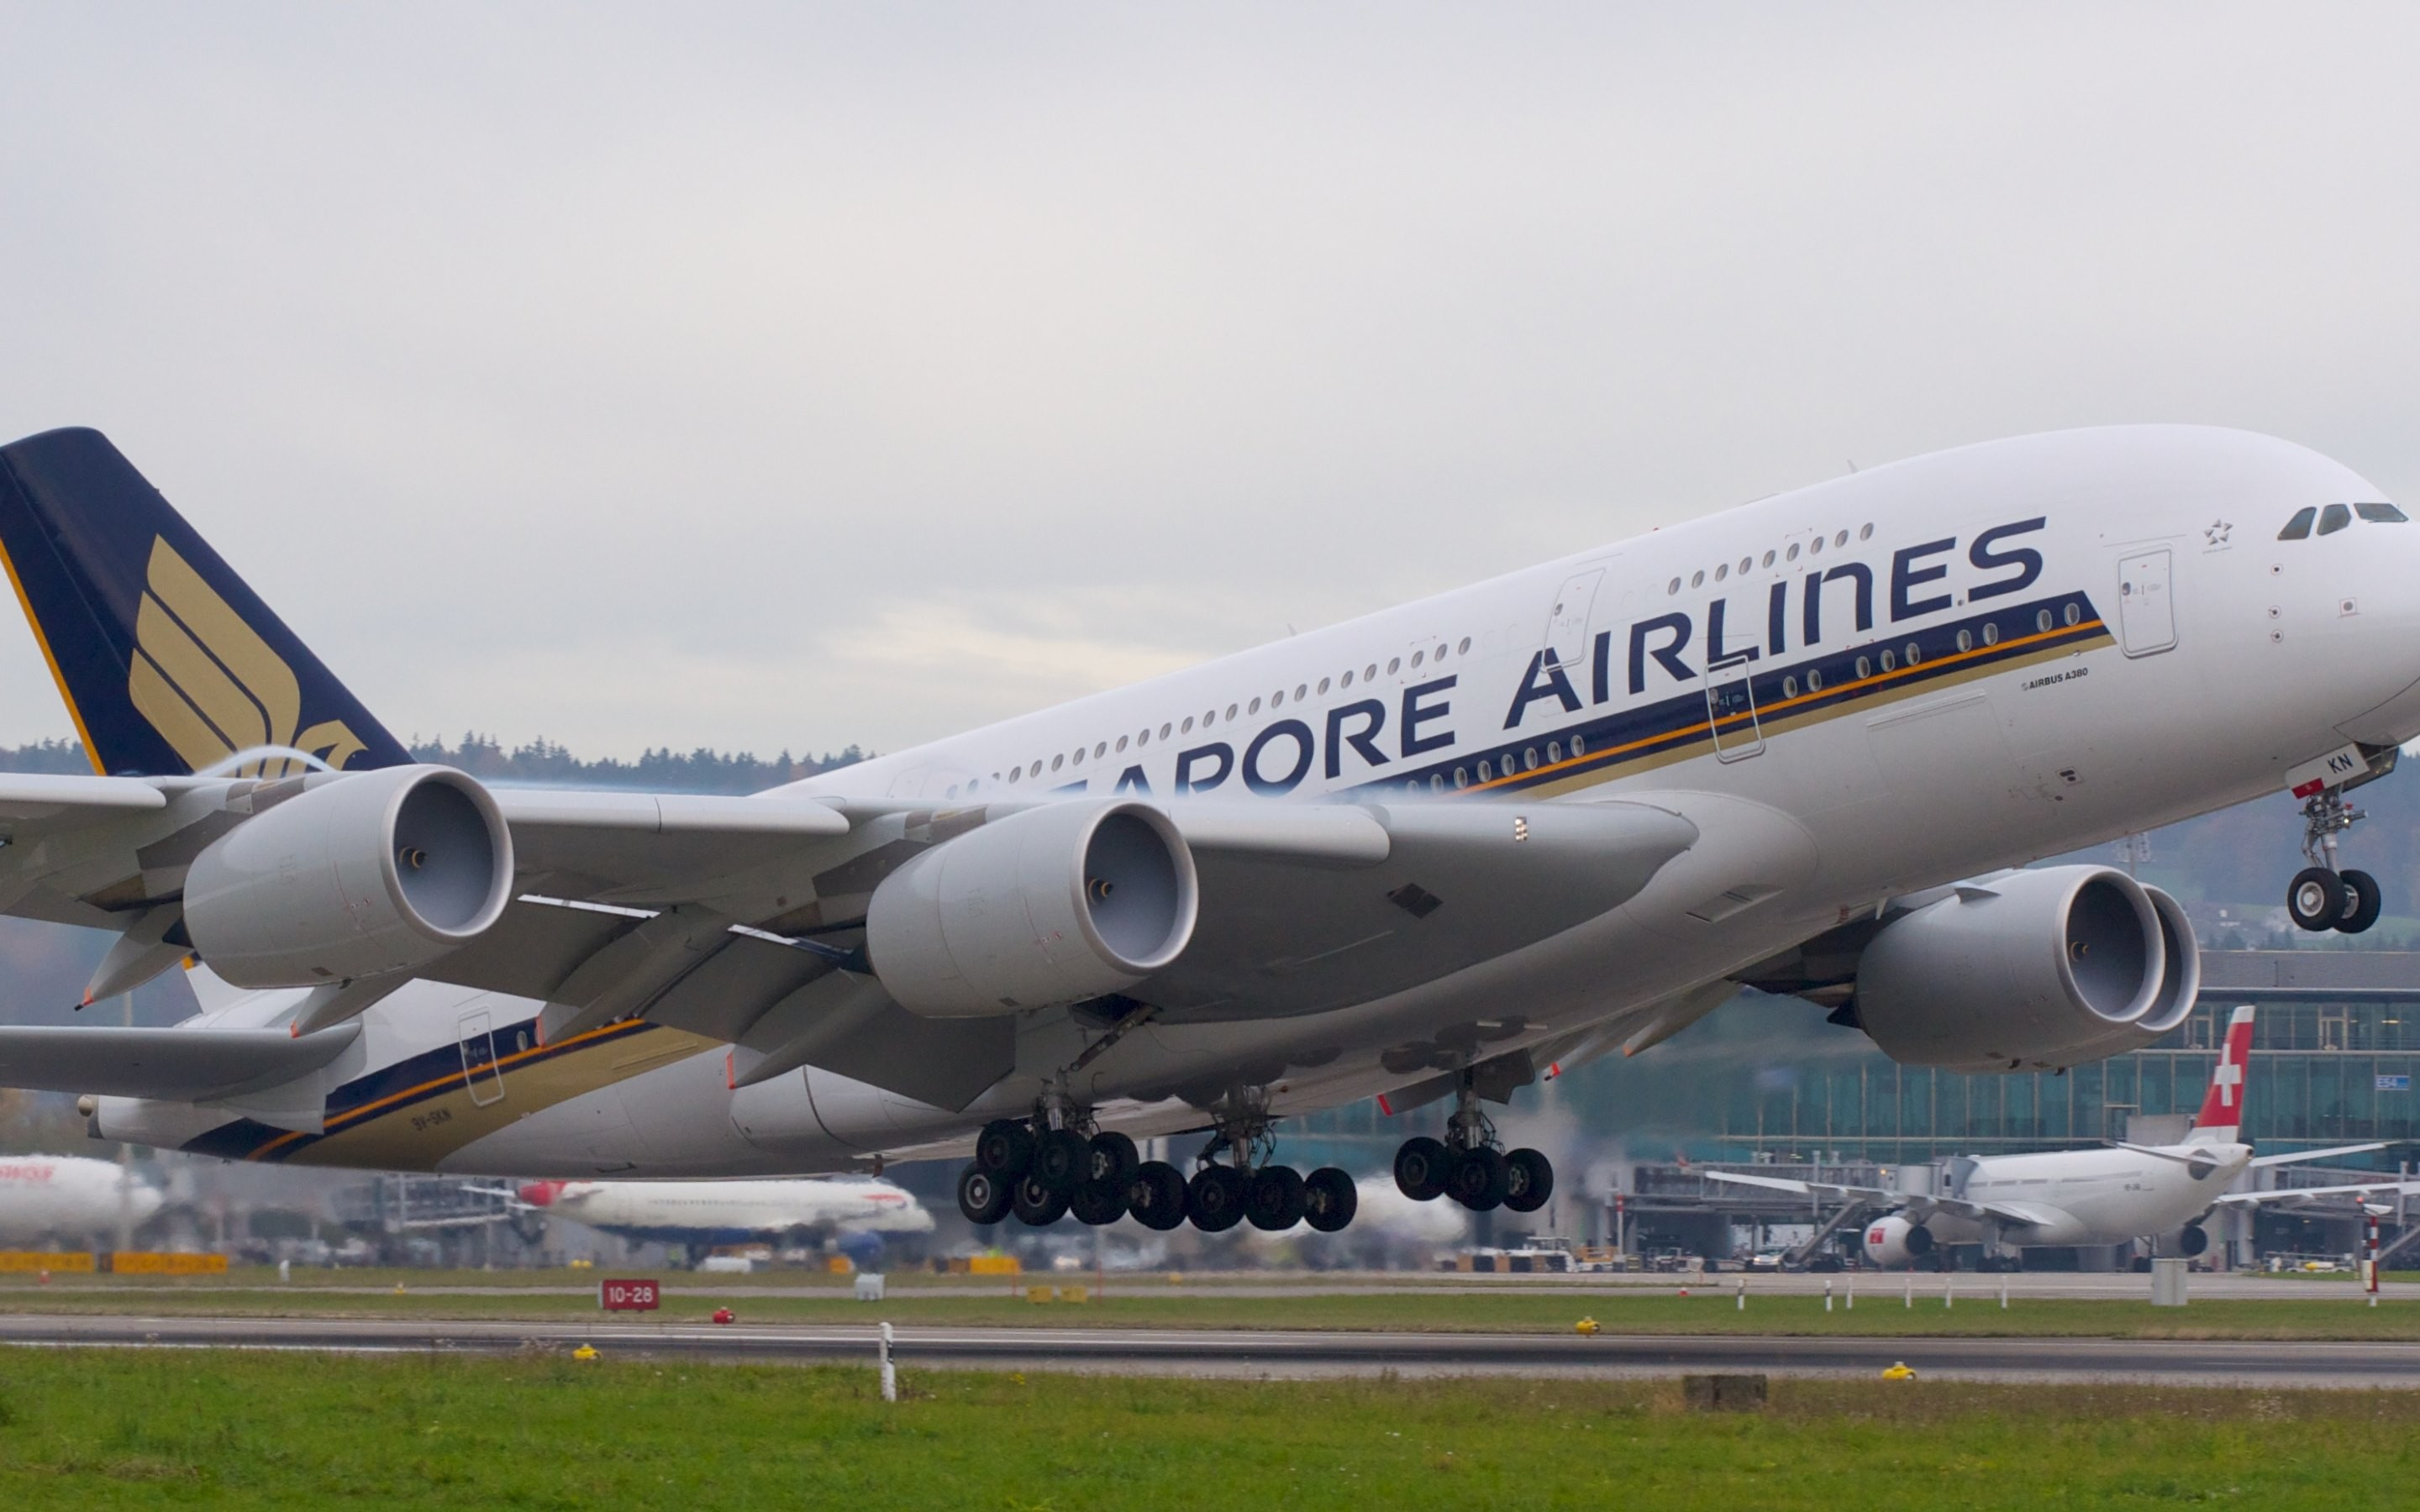 2880x1800 HD Wallpaper: Singapore Airlines Airbus A380-800